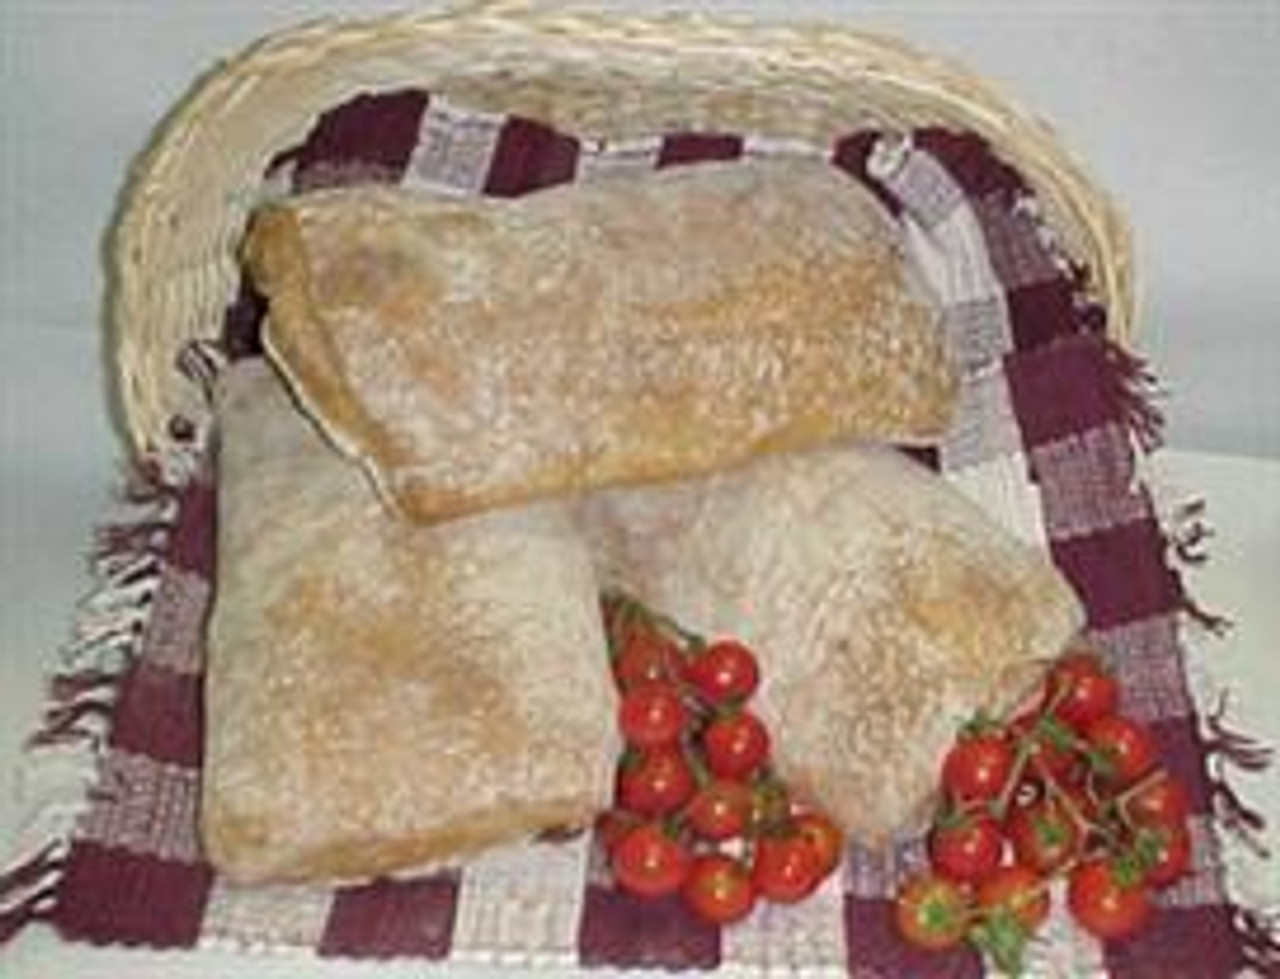 Ciabatta Rustica (made with Olive Oil)